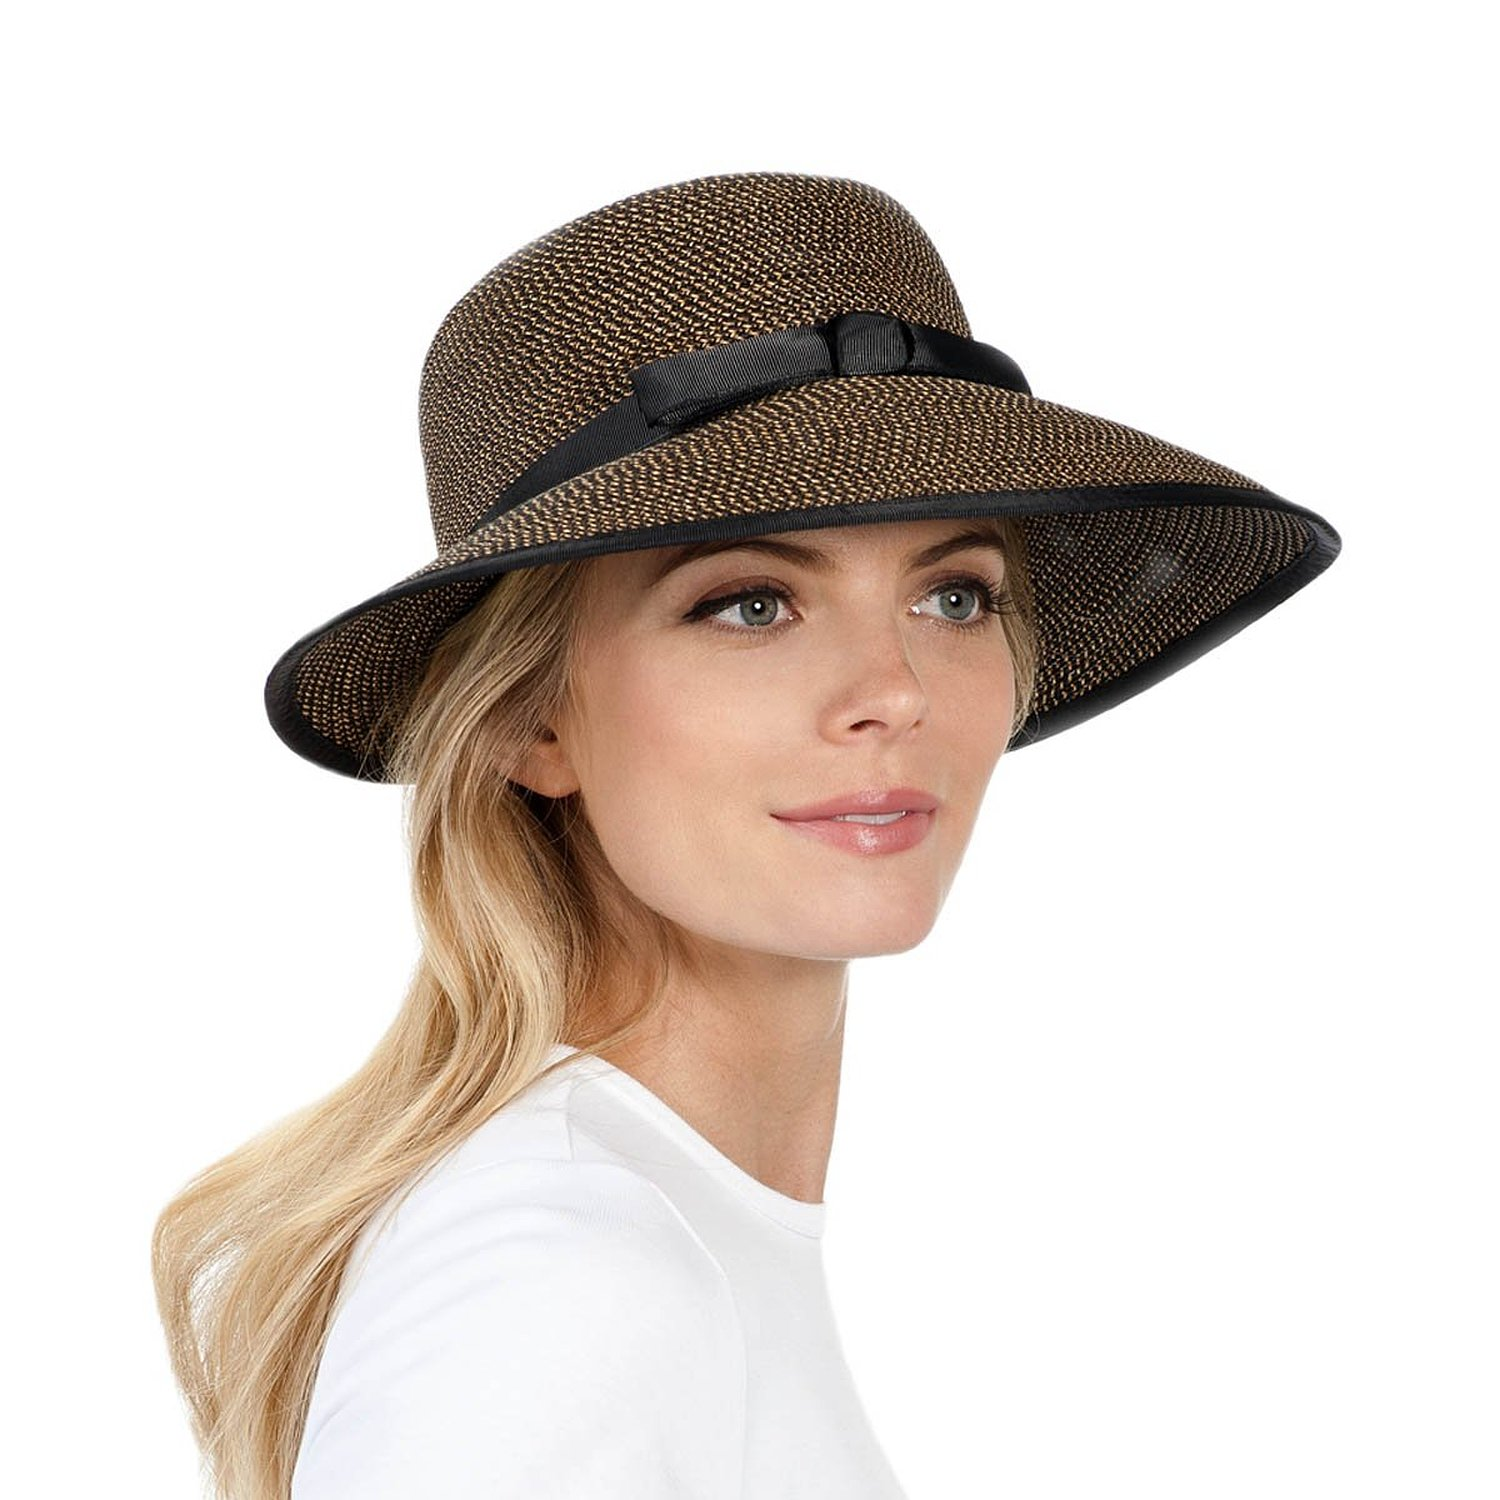 6020df141e1 Get Quotations · Eric Javits Luxury Woman s Hat Squishee Cap Antique Black